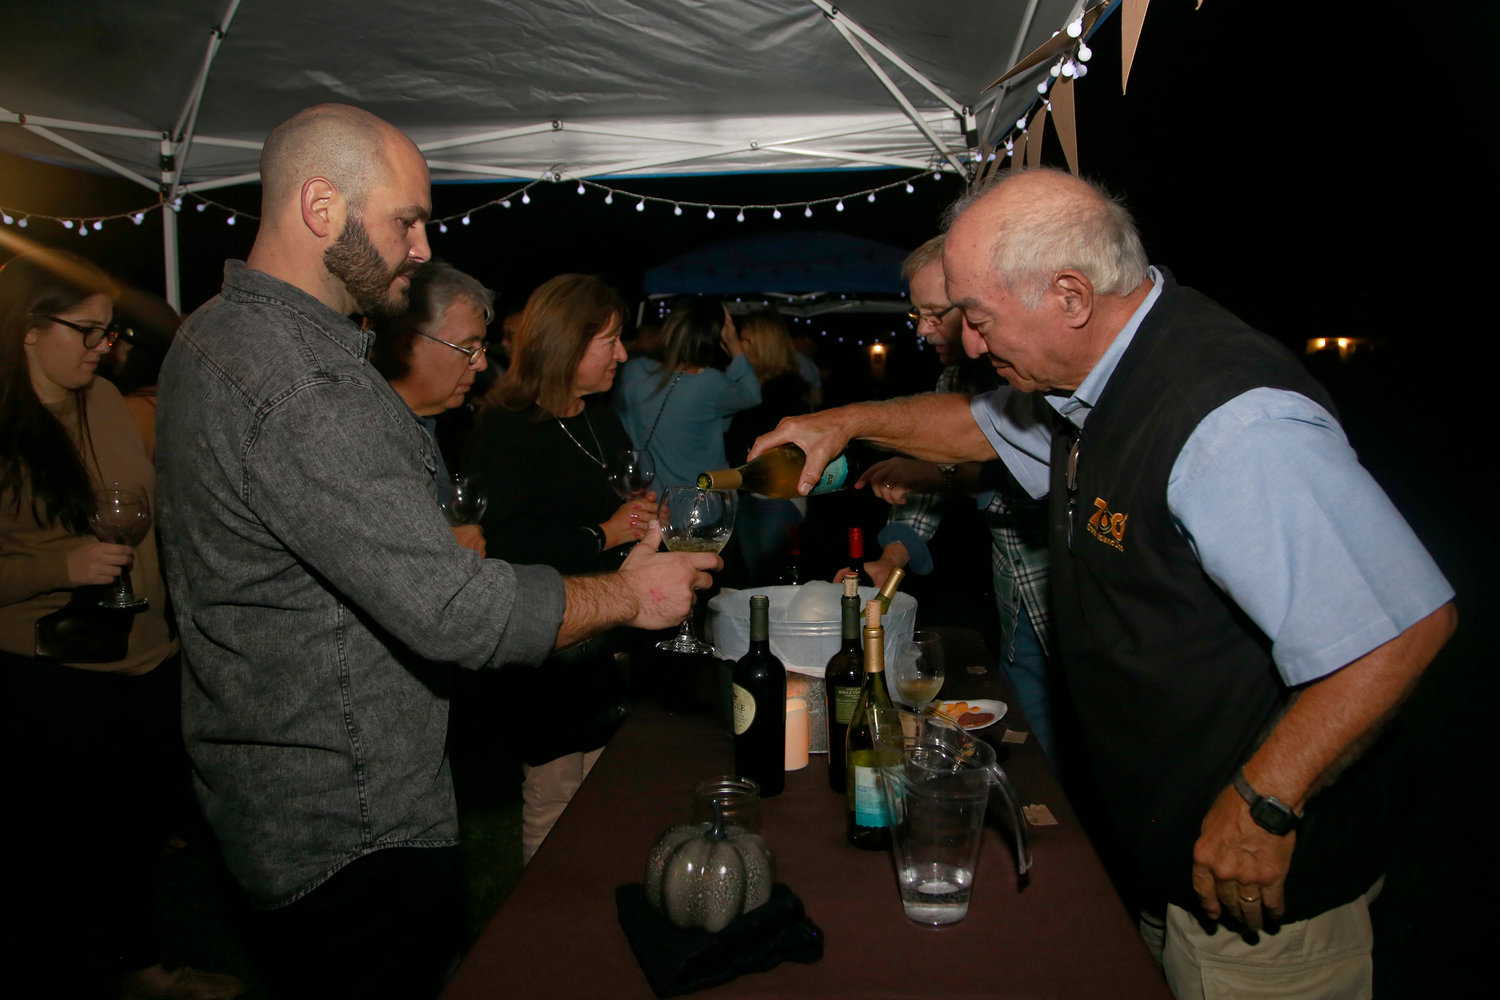 Tony Marino, left, poured Matt Inglese some California Chardonnay.